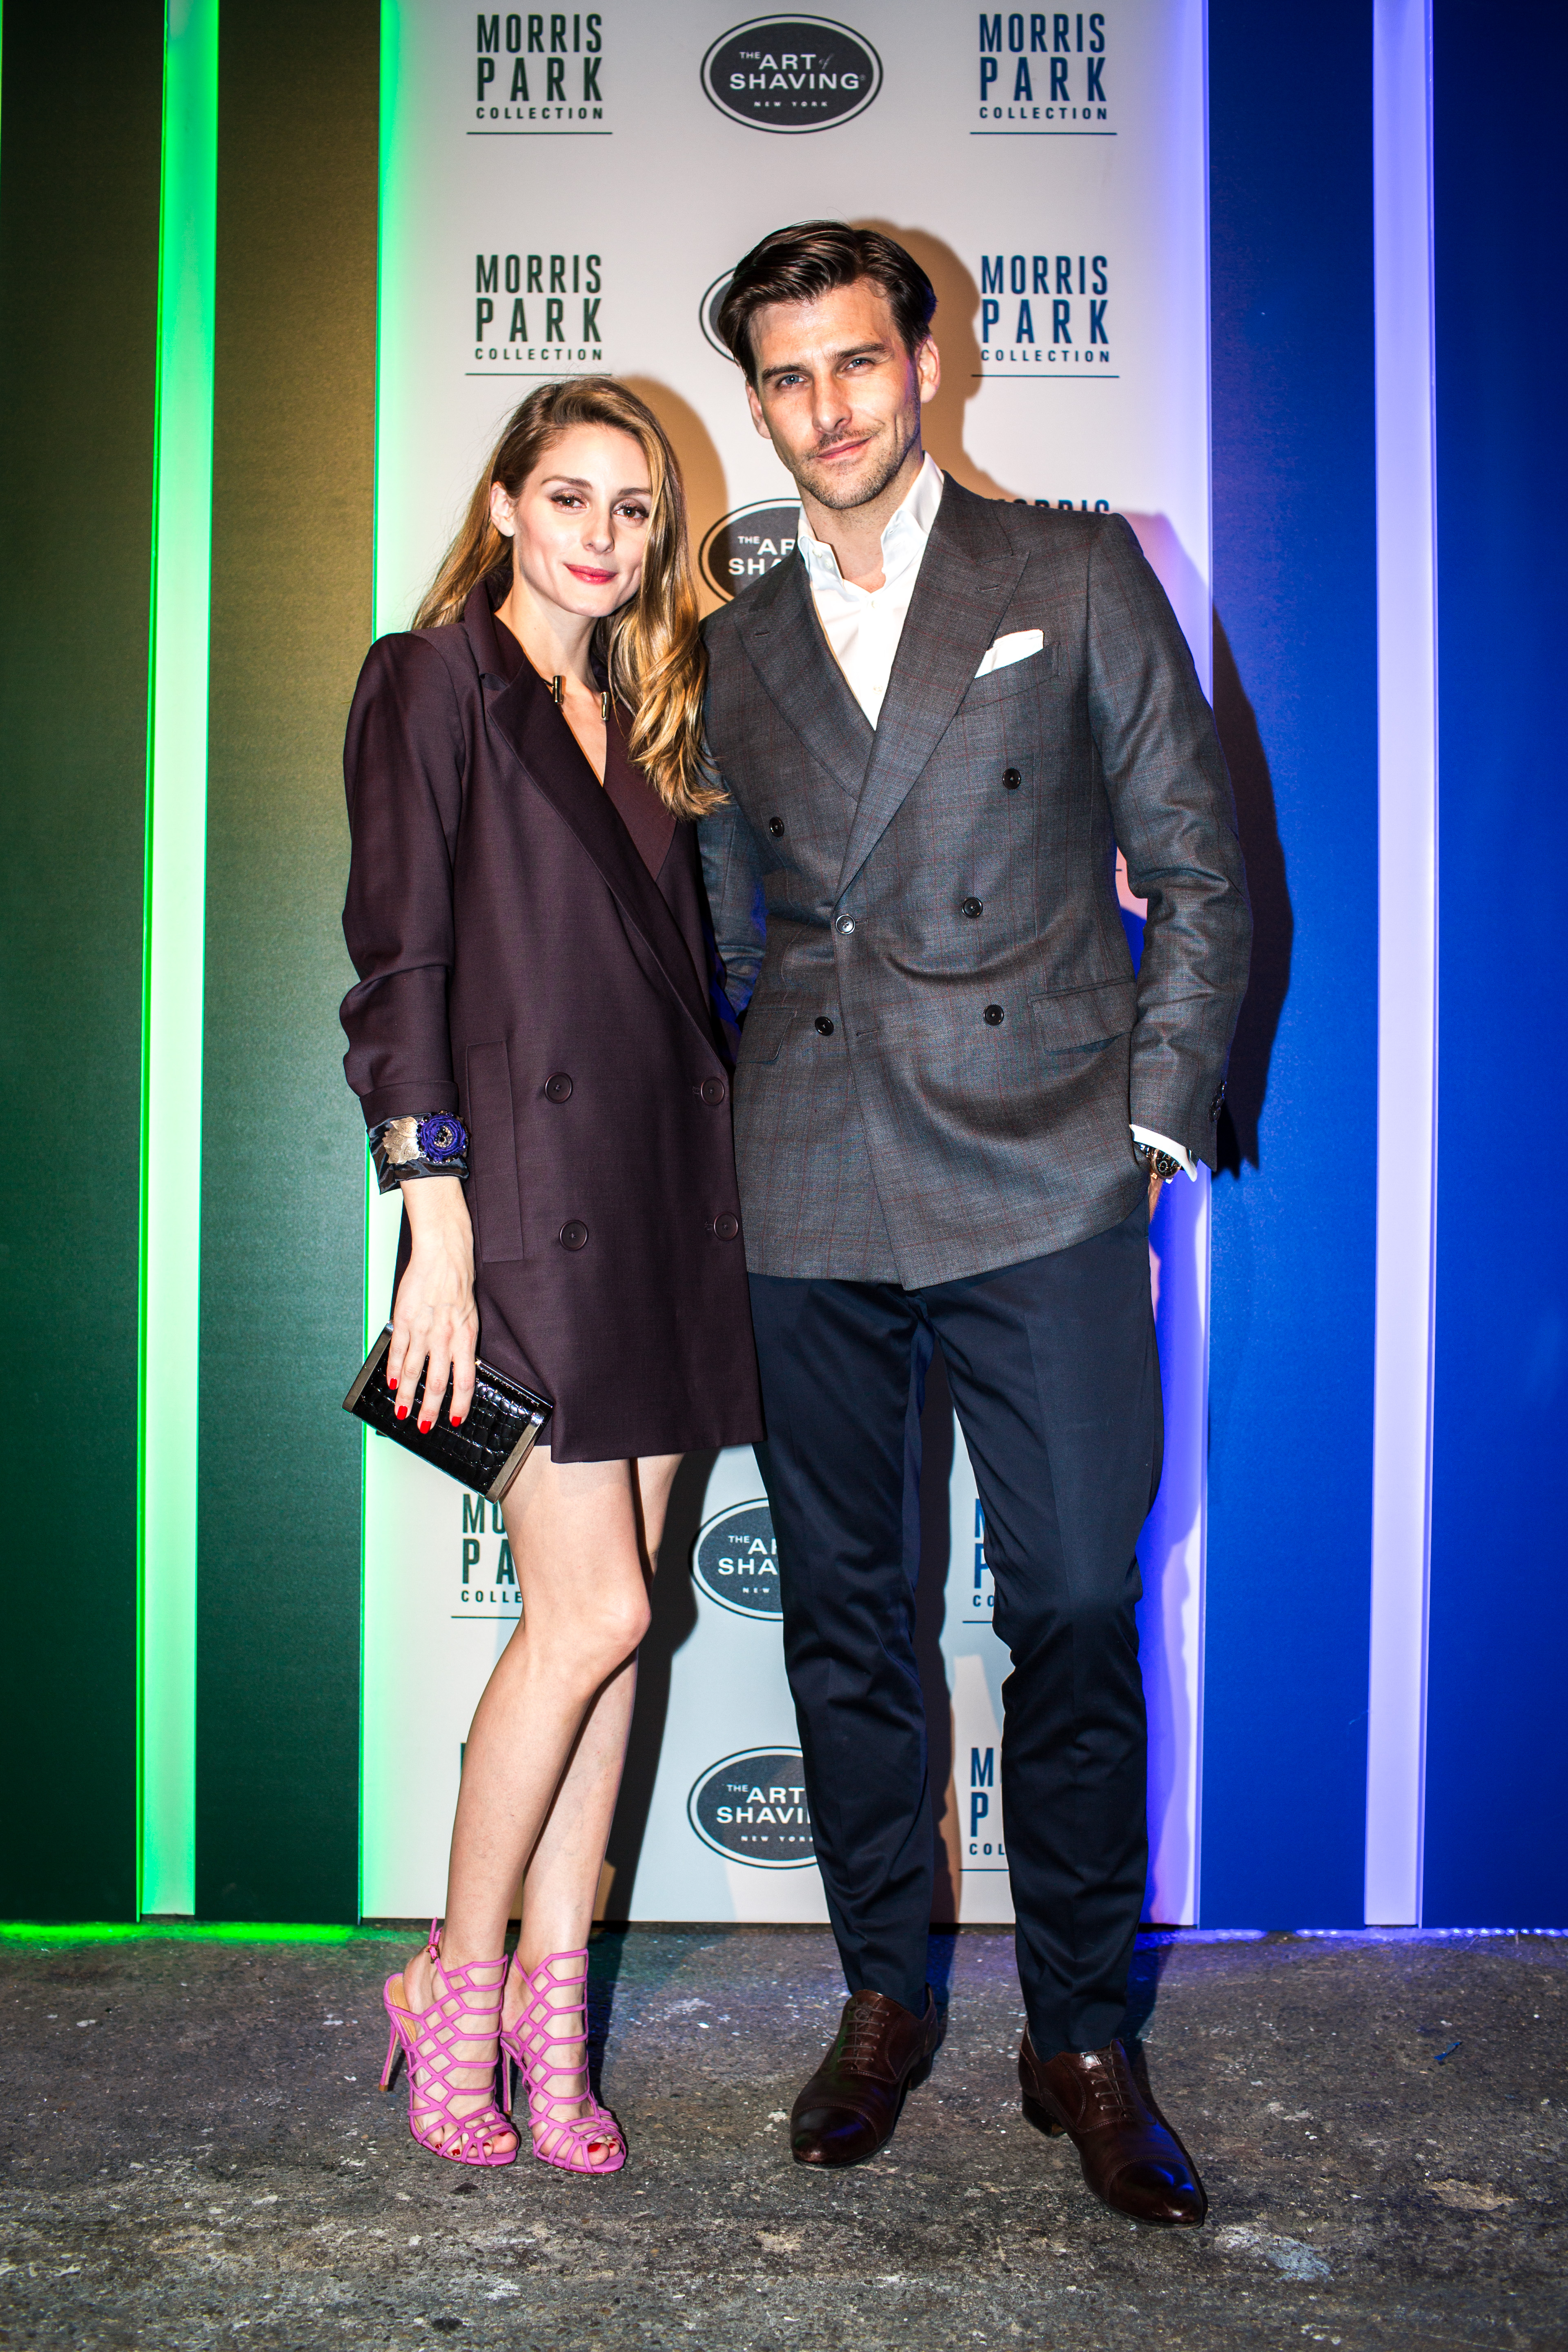 Calendar 2015 Daily 2017 Holidays Daily Calendar From Holiday Insights Racing Around With Olivia Palermo And Johannes Huebl